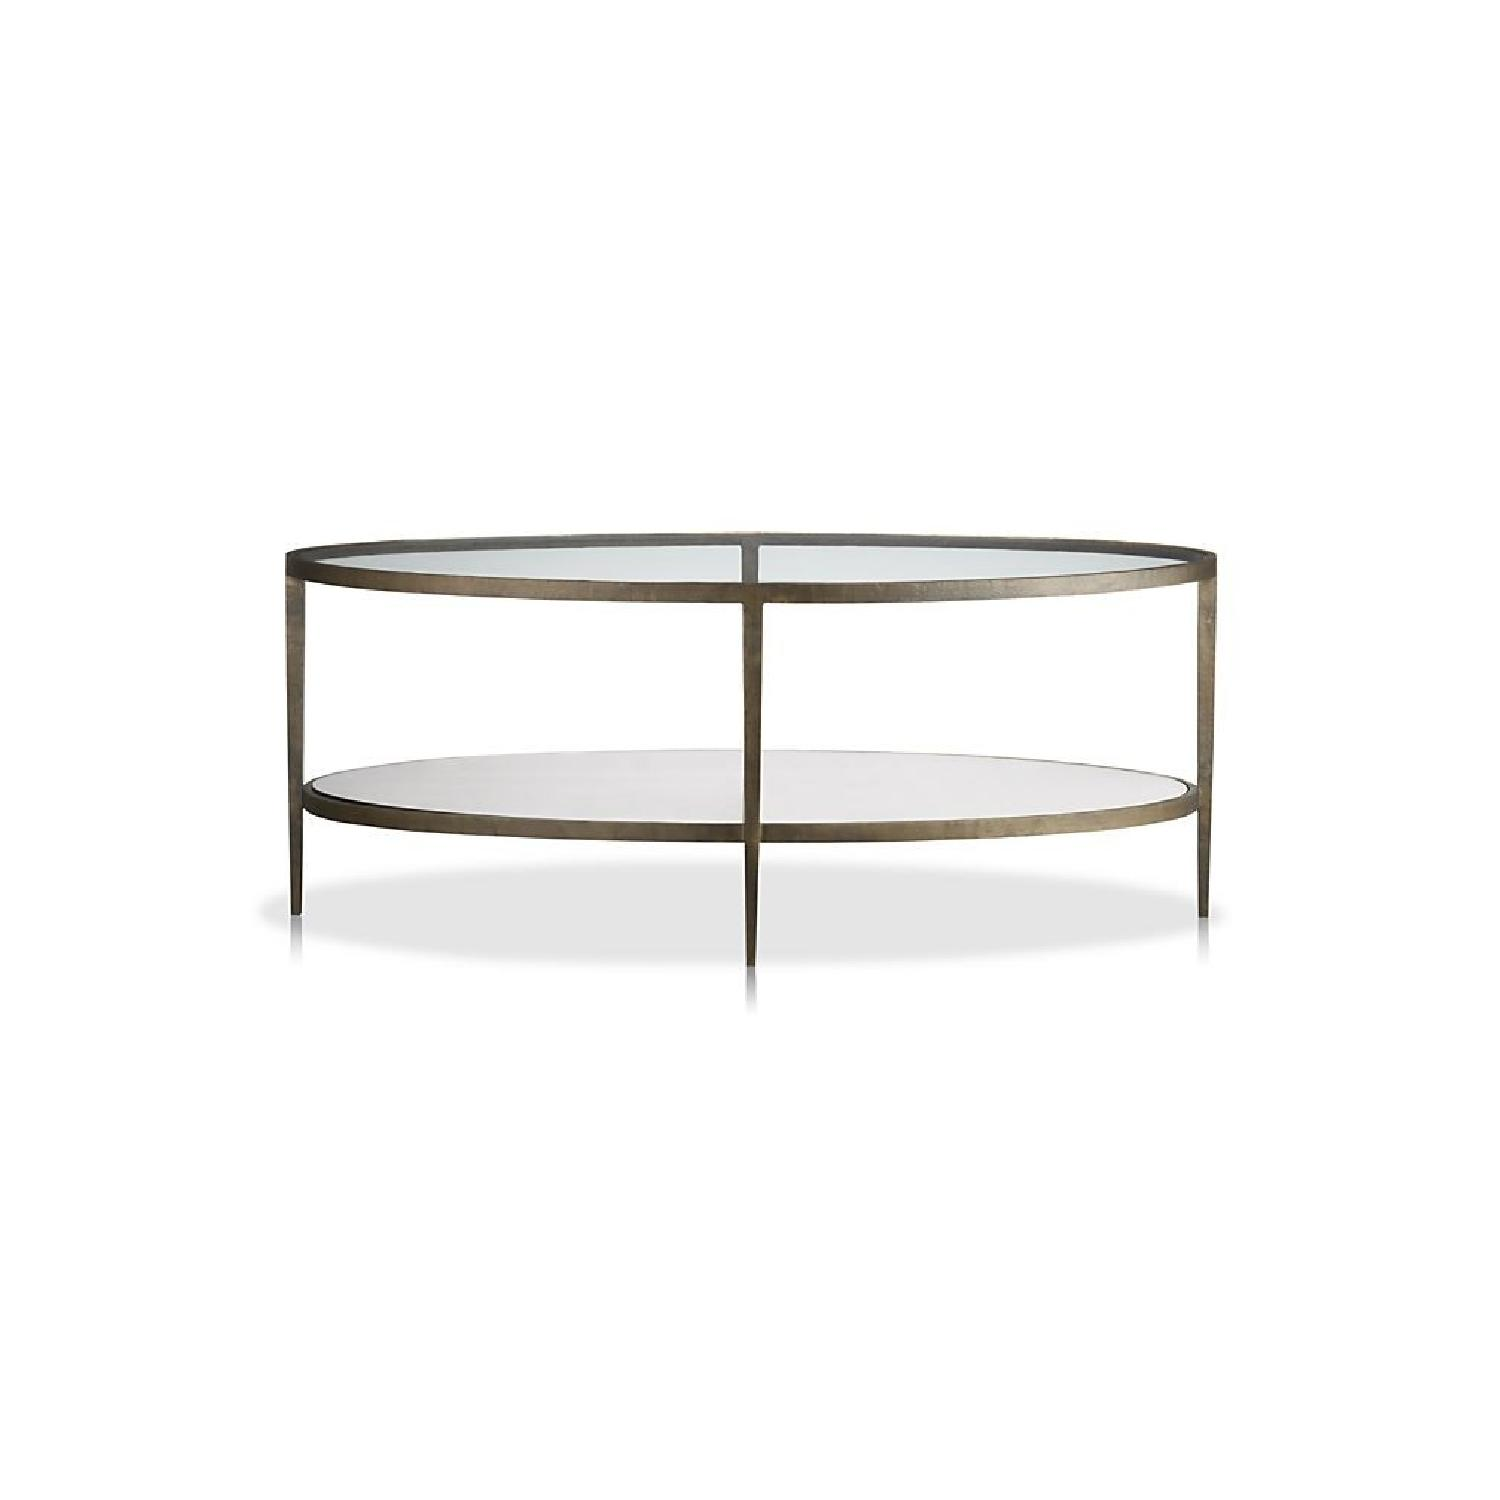 Crate & Barrel Claremont Oval Coffee Table - image-3